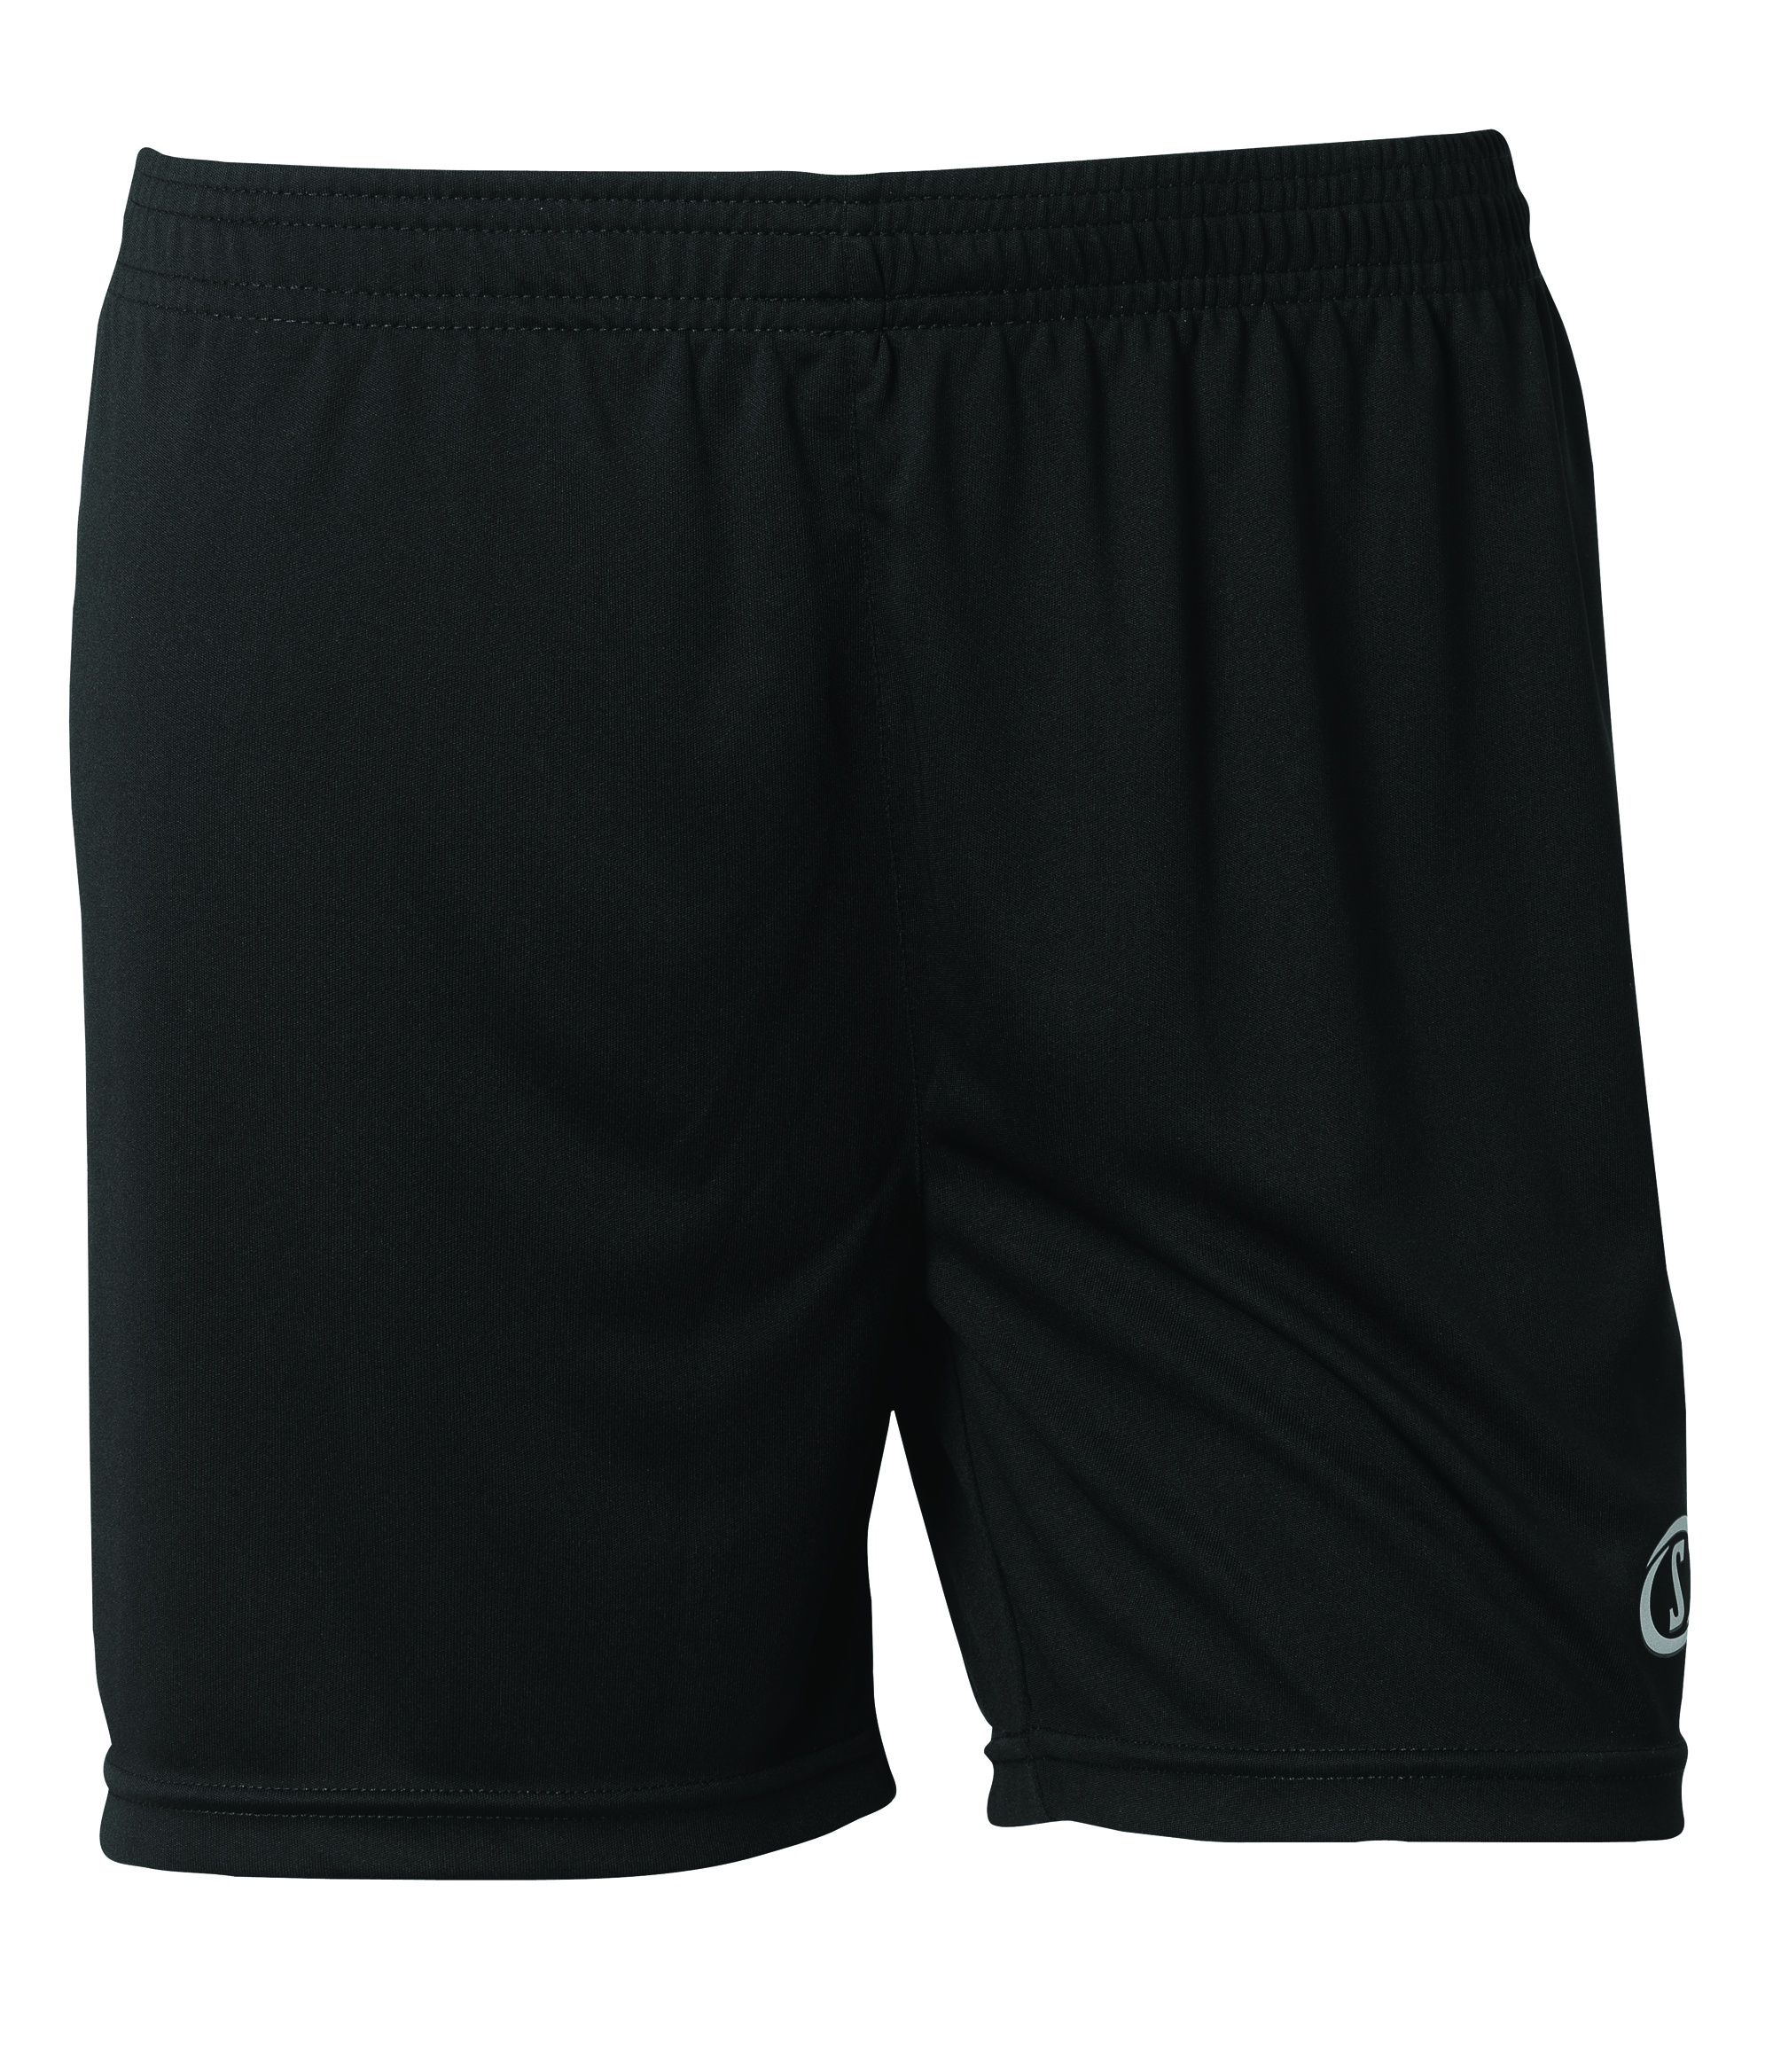 Kids Core Training Shorts - Black - 164